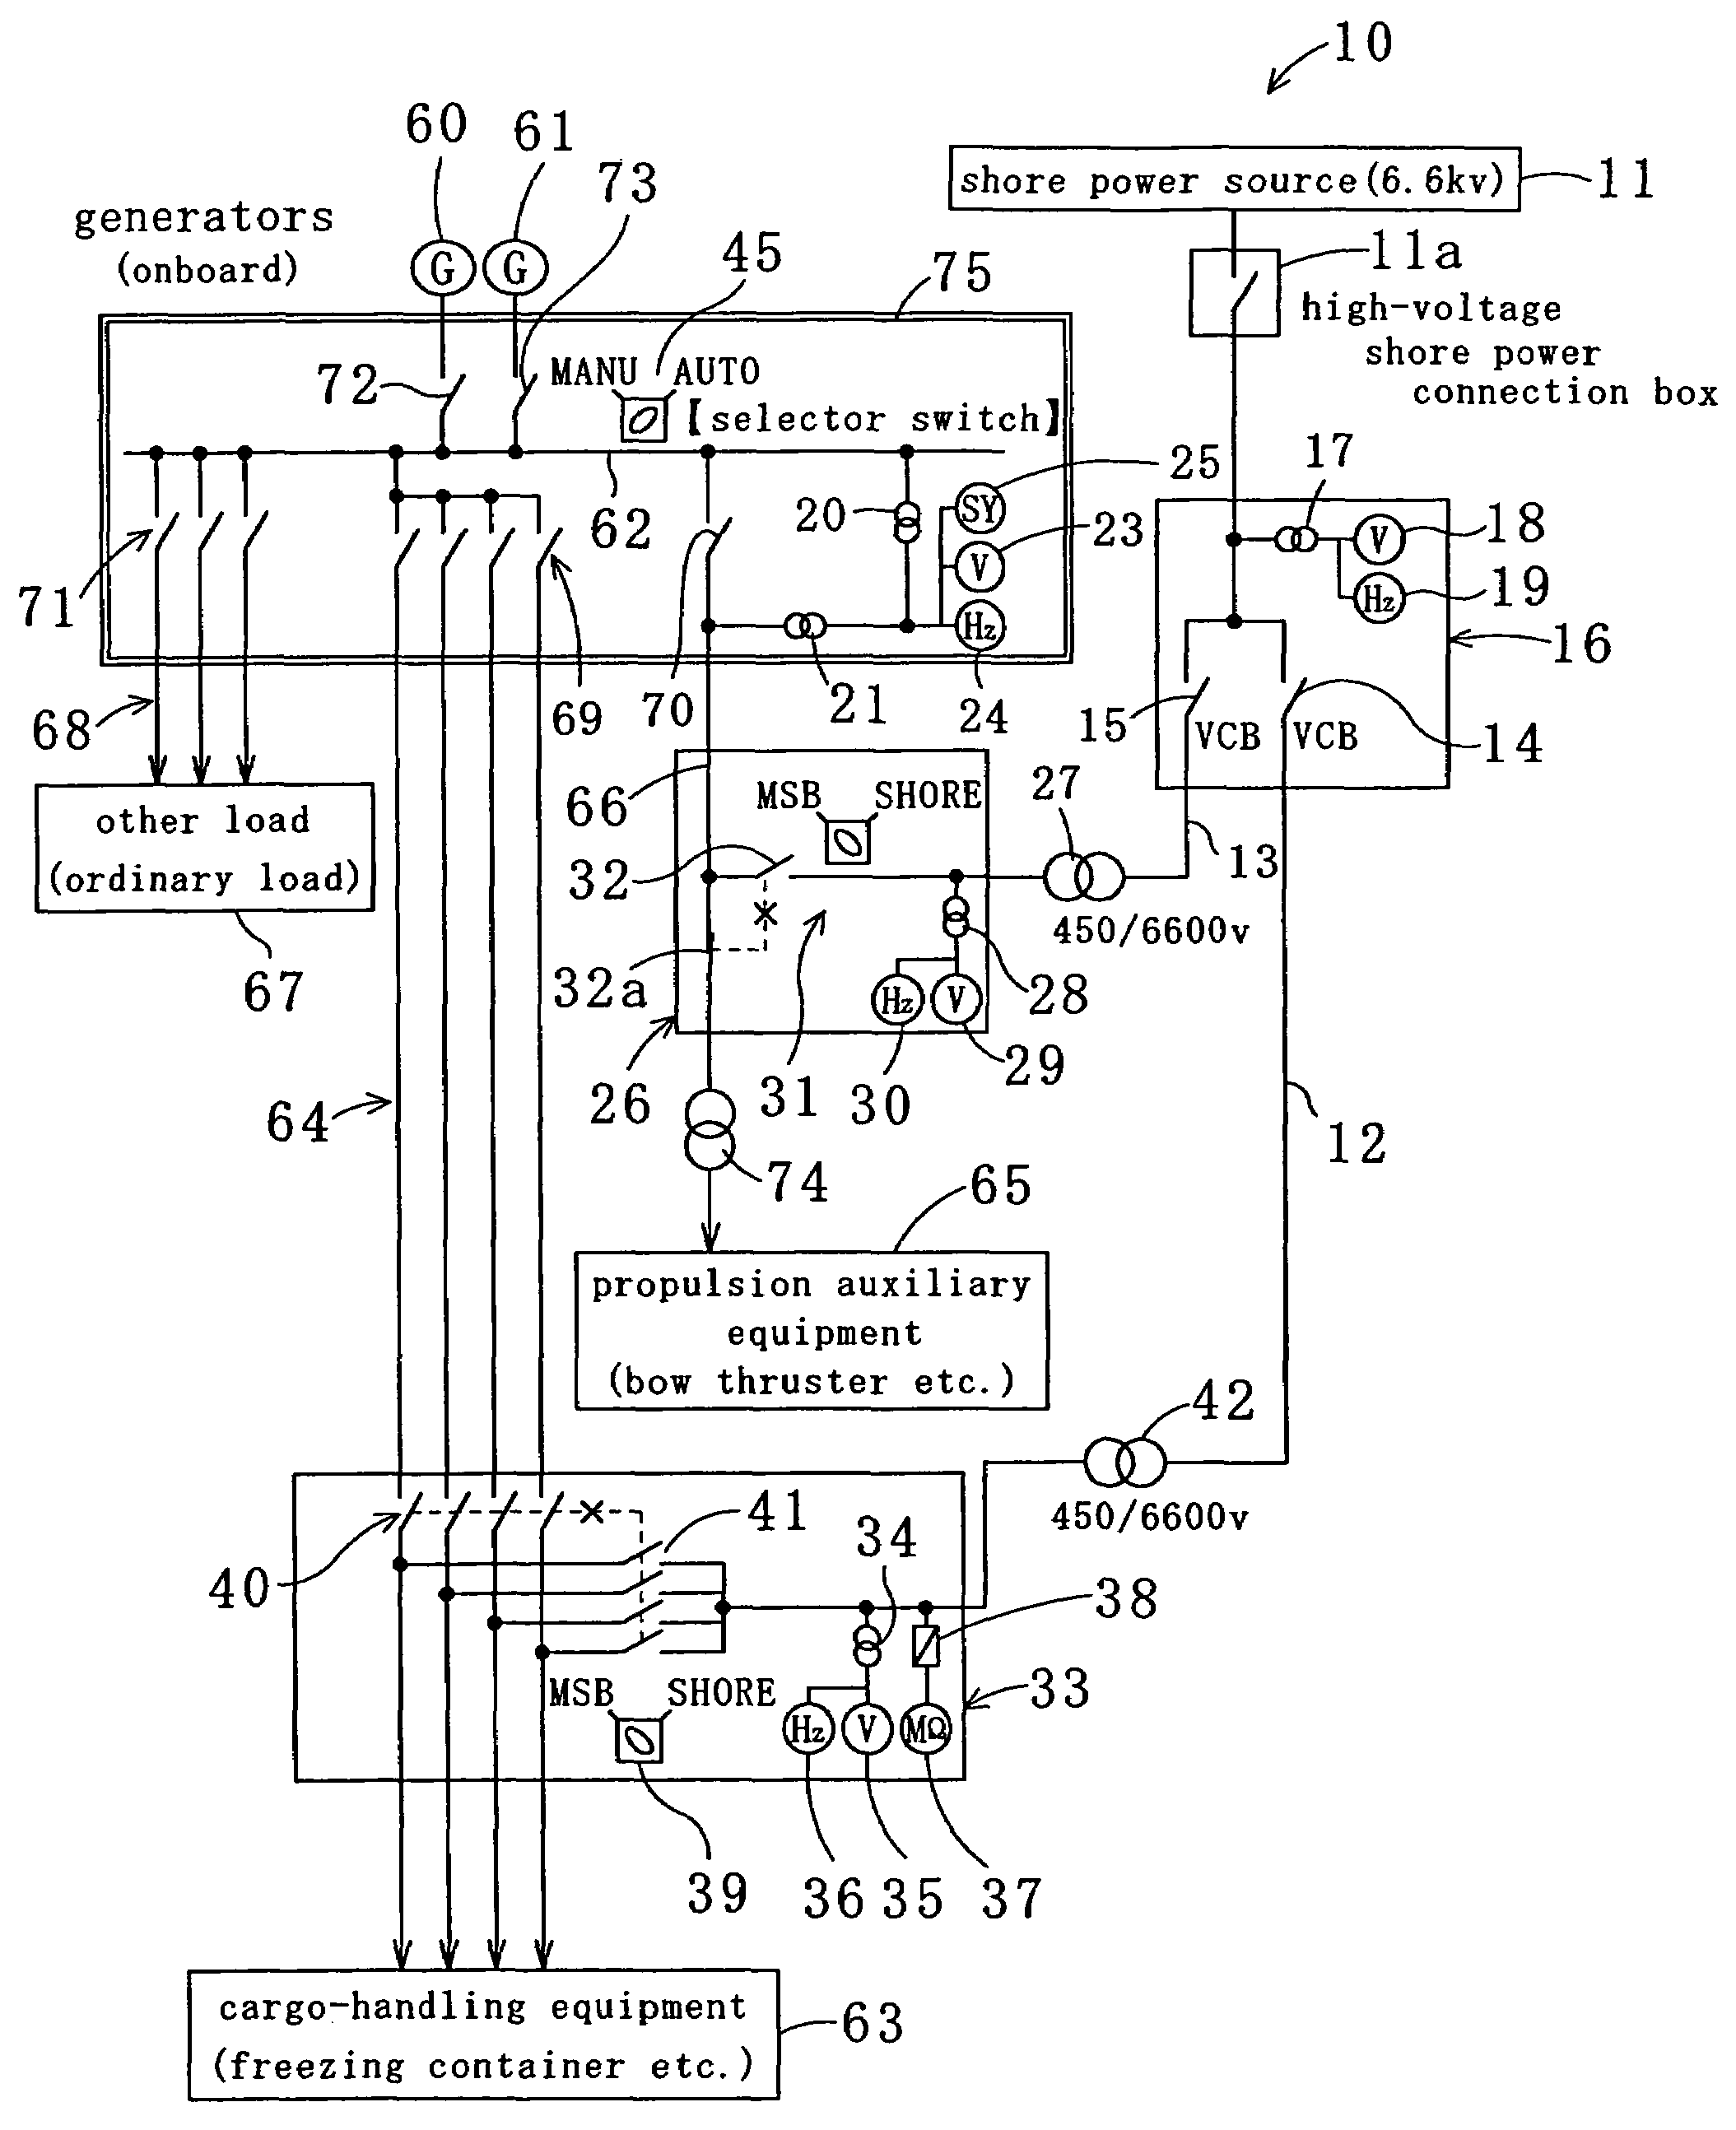 US07253538 20070807 D00000 patent us7253538 method of supplying electric power from shore vcb panel wiring diagram at mr168.co